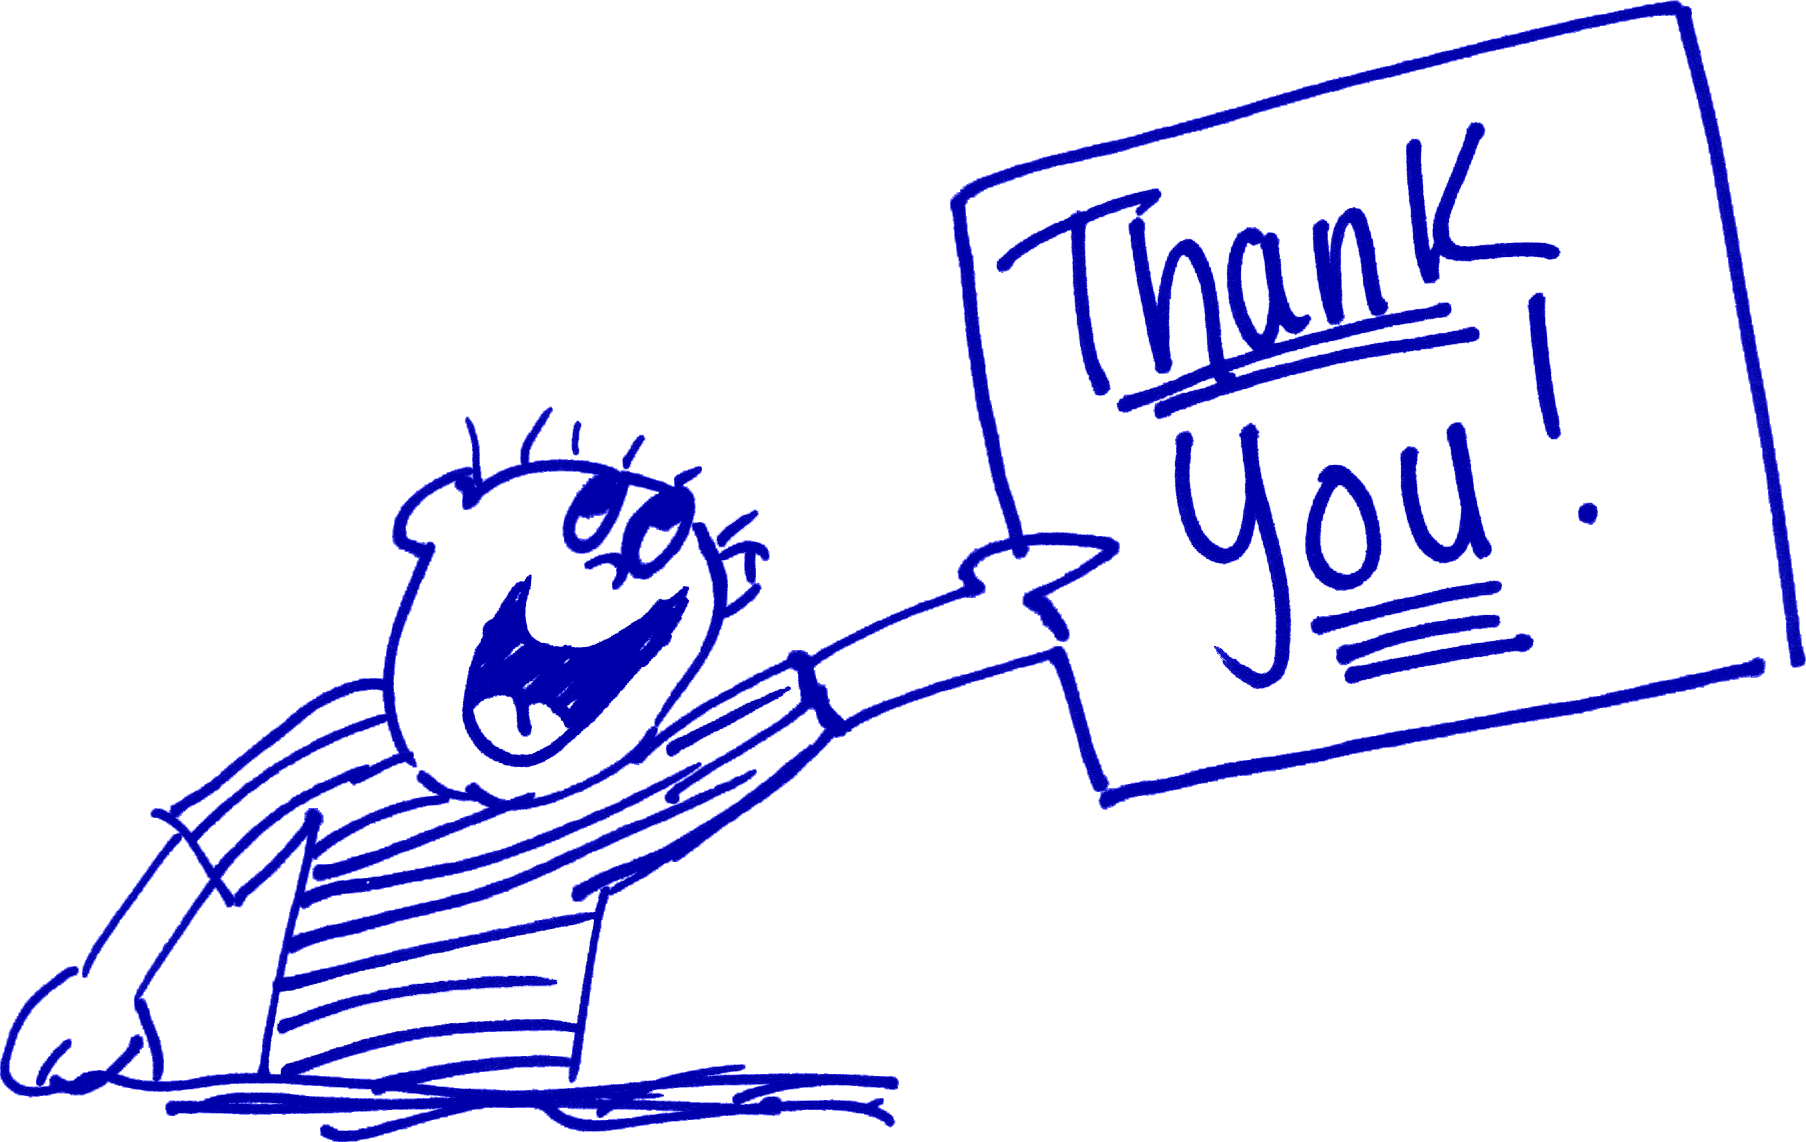 Funny Thanks Clipart - Clipart Kid